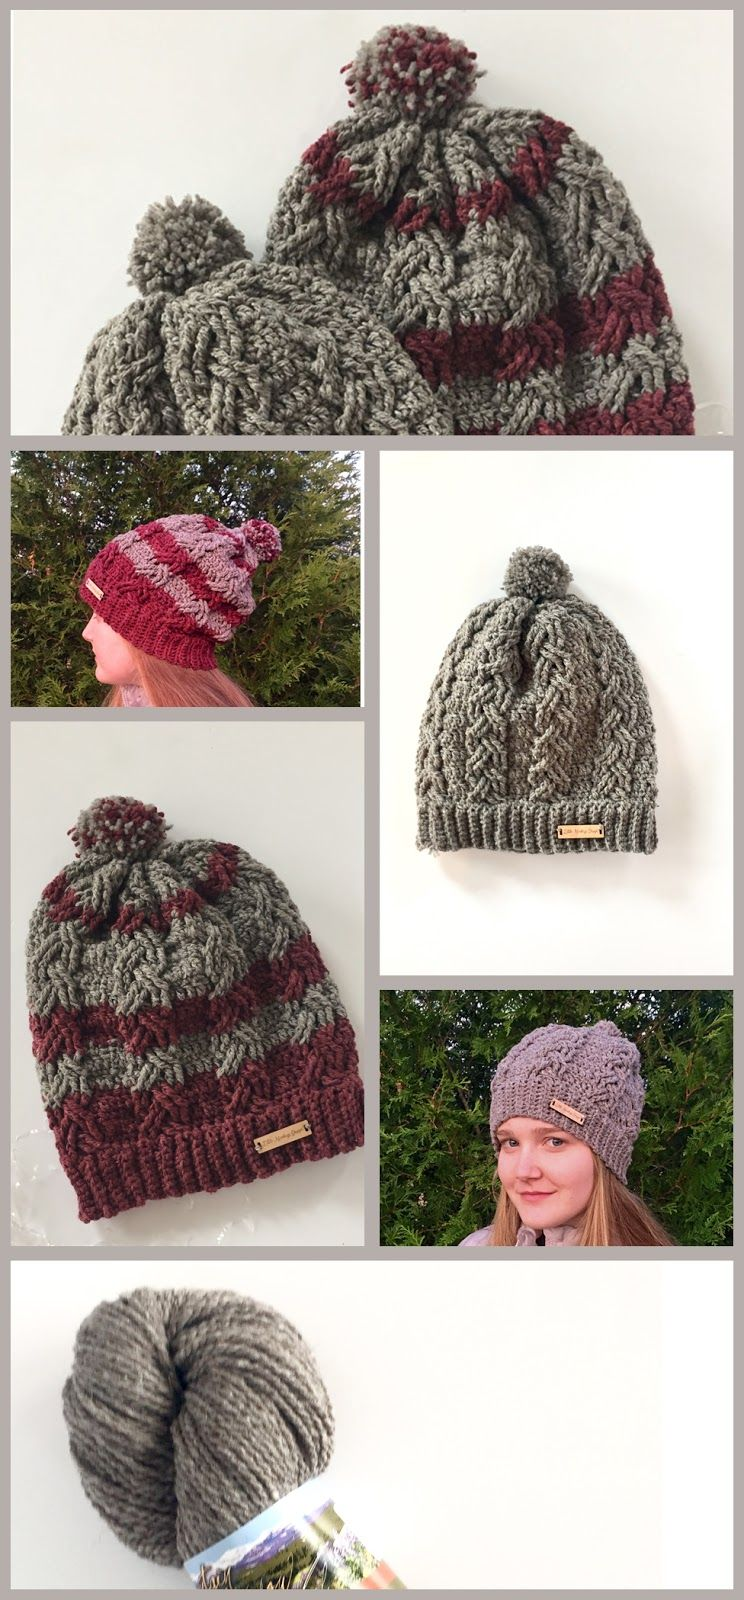 Dreaming of the slopes hat crochet pattern and crochet cable stitch dreaming of the slopes hat crochet pattern and crochet cable stitch tutorial video by little monkeys baditri Image collections